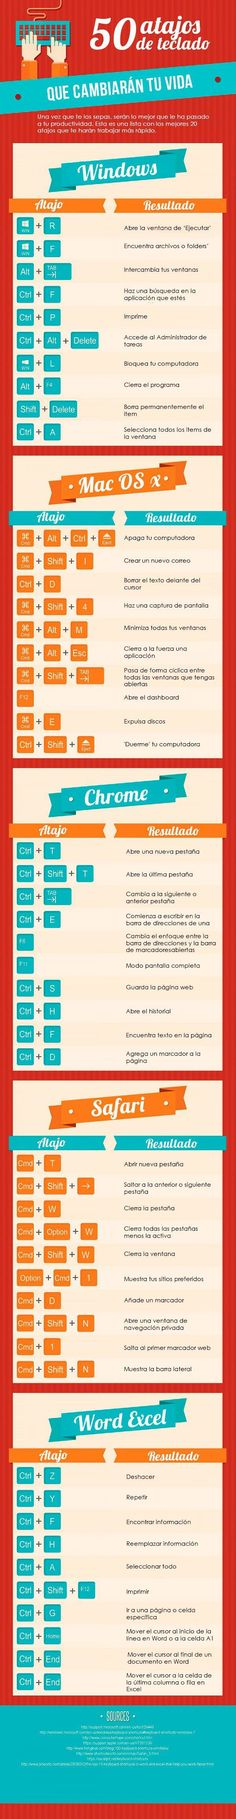 50 Keyboard Shortcuts Which Will Change Your Life Infographic Computer Internet Technology Shortcuts Computer Help, Der Computer, Computer Technology, Computer Science, Computer Tips, Computer Internet, Computer Shortcut Keys, Web Internet, Linux